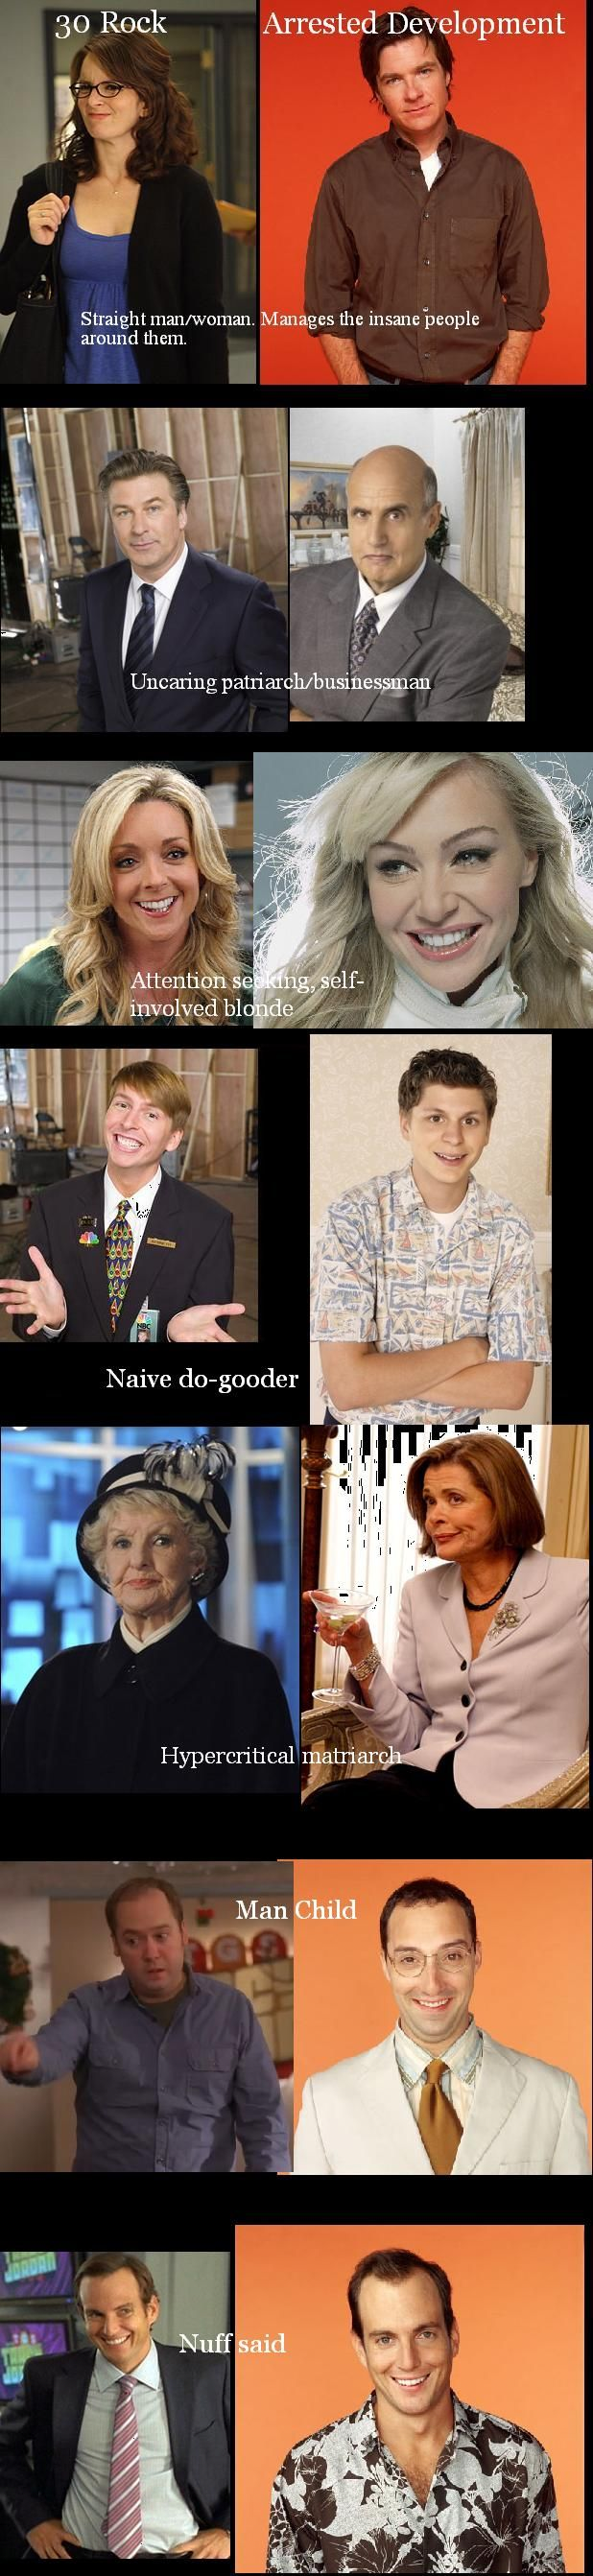 Arrested Development/30 Rock comparison. Mind=BLOWN.